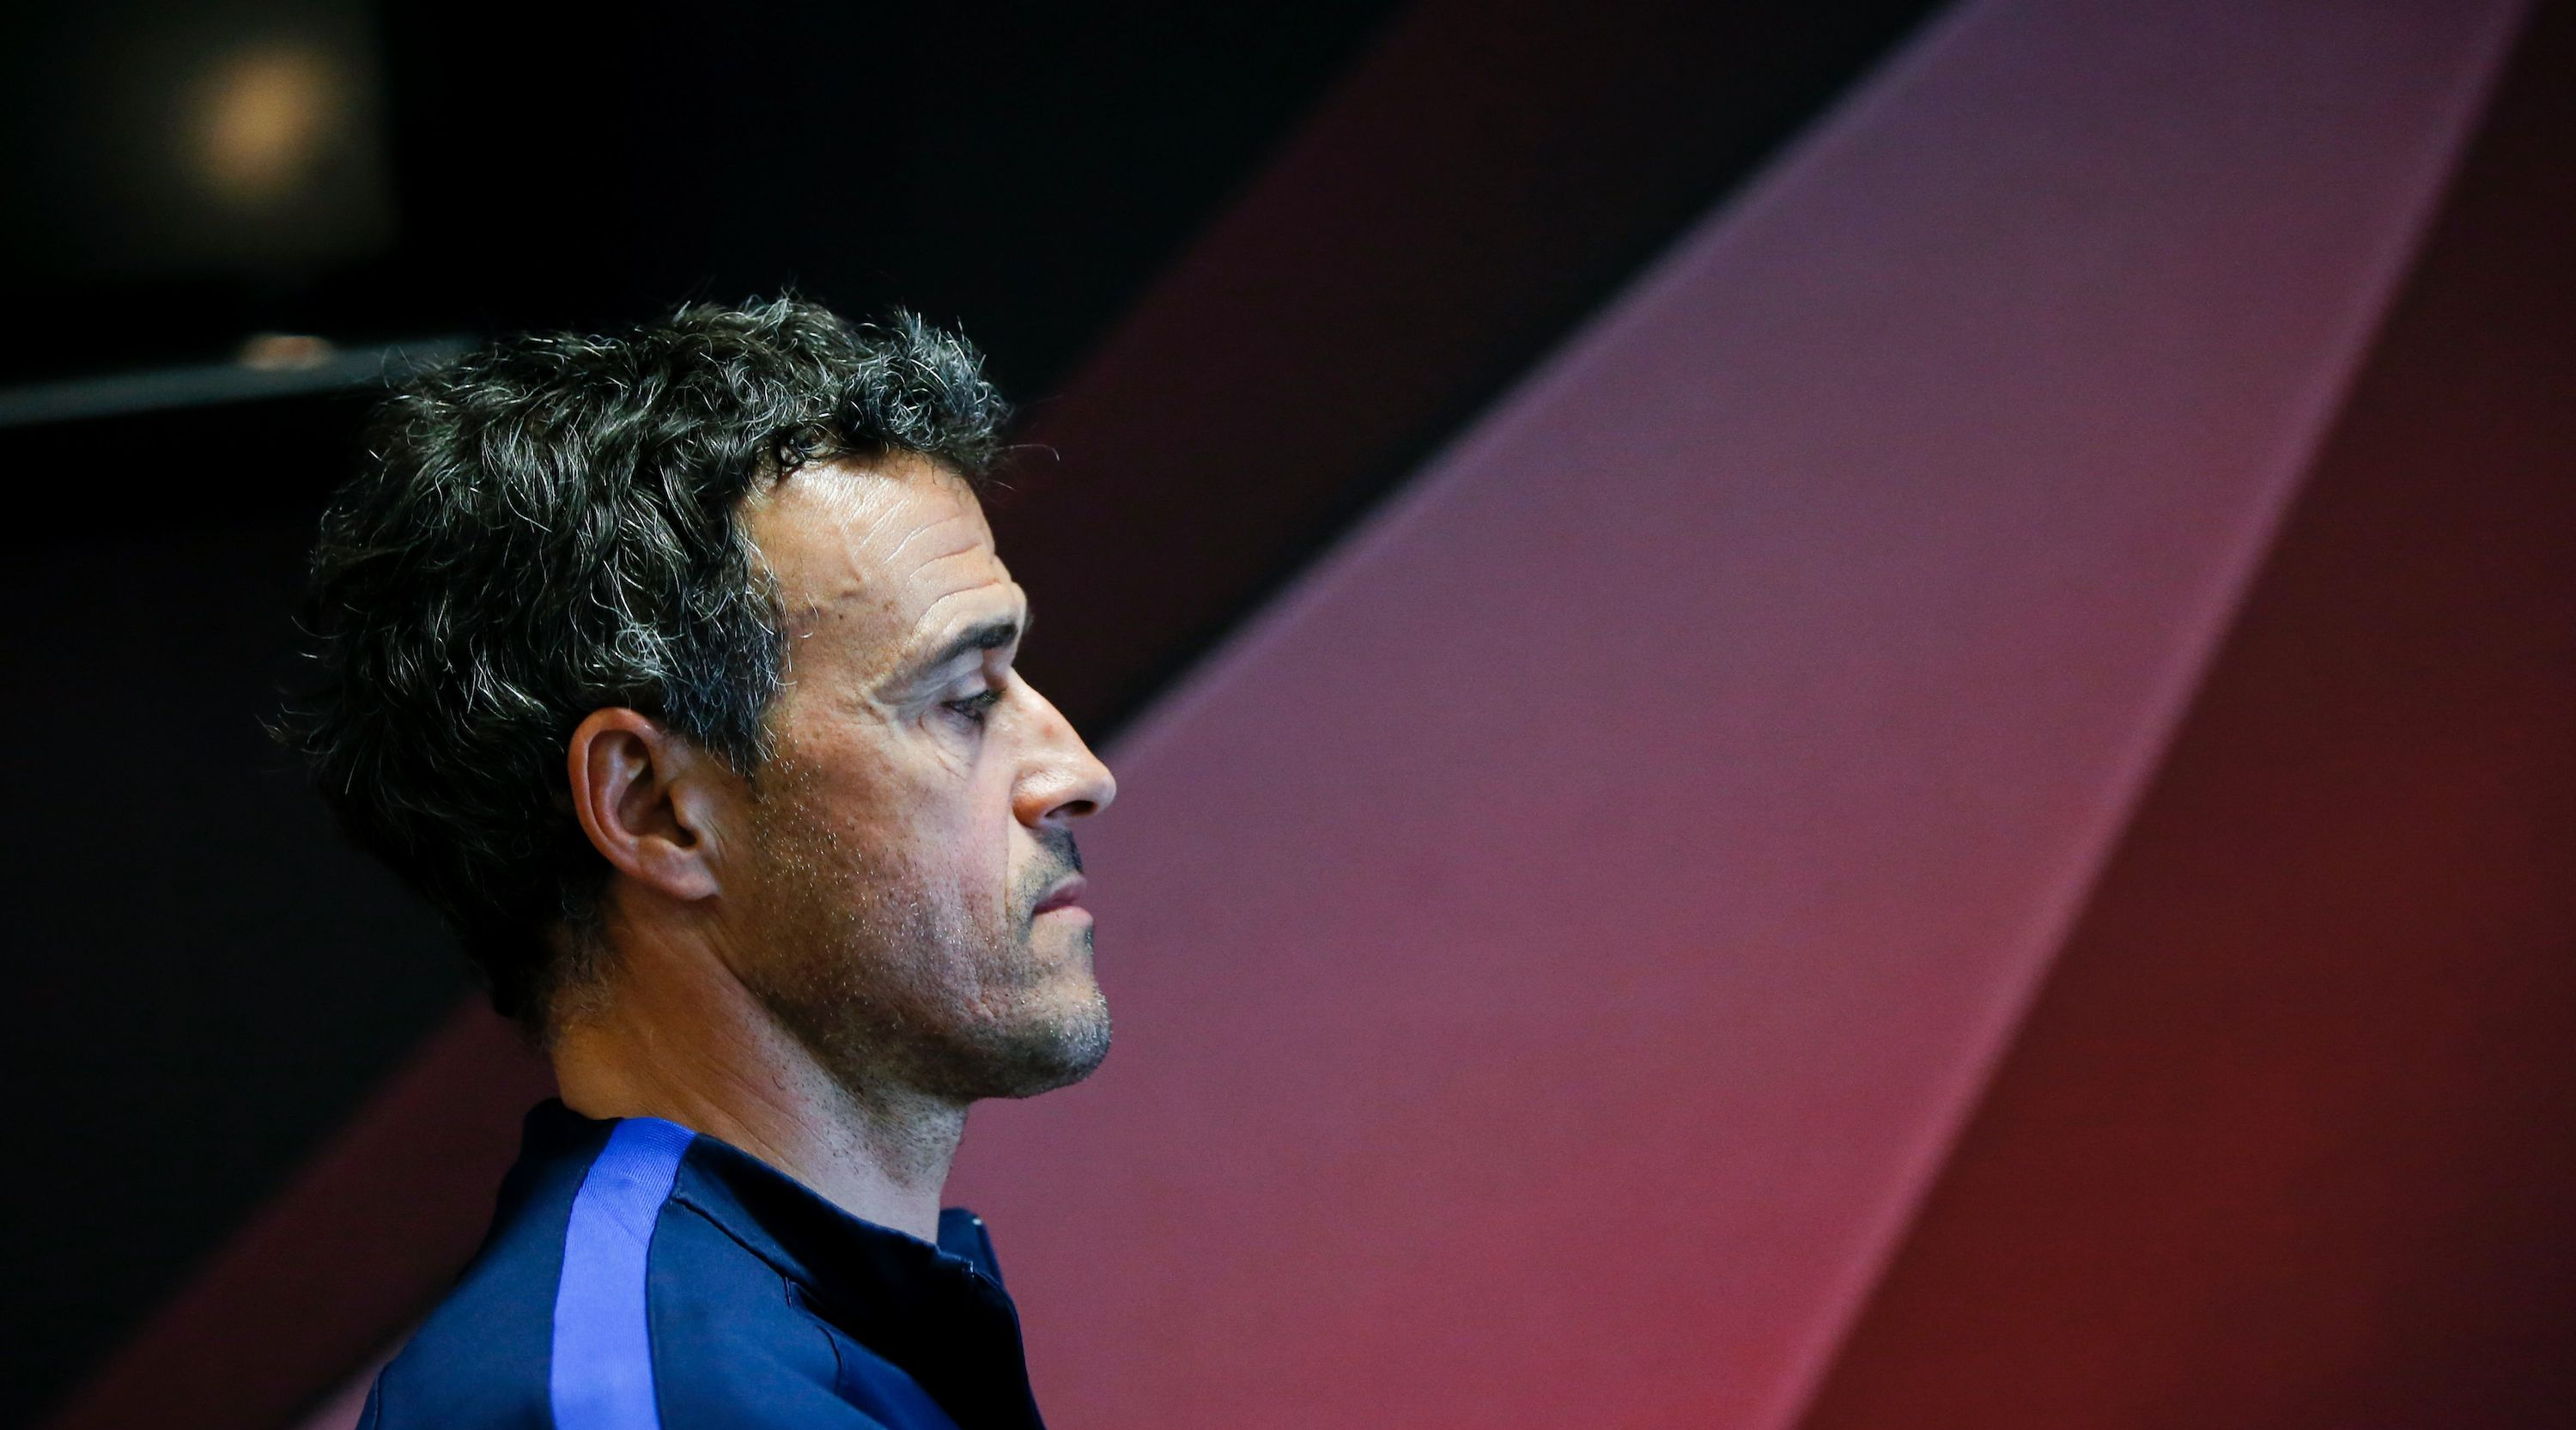 TOPSHOT - Barcelona's coach Luis Enrique leaves the press room after giving a press conference at the Sports Center FC Barcelona Joan Gamper in Sant Joan Despi, near Barcelona on April 1, 2017. / AFP PHOTO / PAU BARRENA (Photo credit should read PAU BARRENA/AFP/Getty Images)